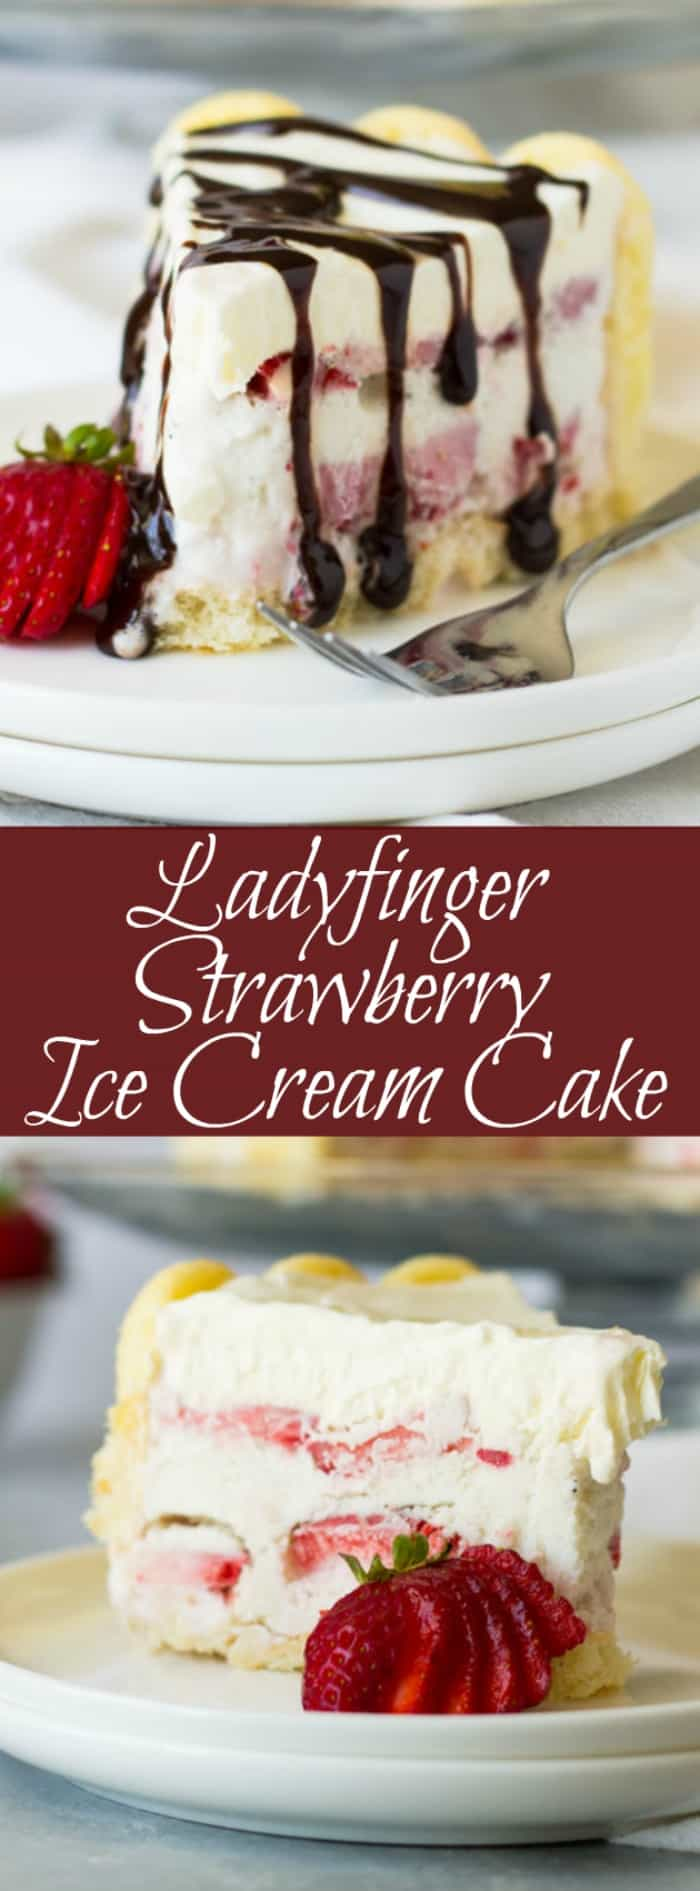 Ladyfinger Strawberry Ice Cream Cake -an easy and eye catching dessert. Layered with strawberry ice cream, luscious strawberries and topped with freshly whipped cream! | www.countrysidecravings.com